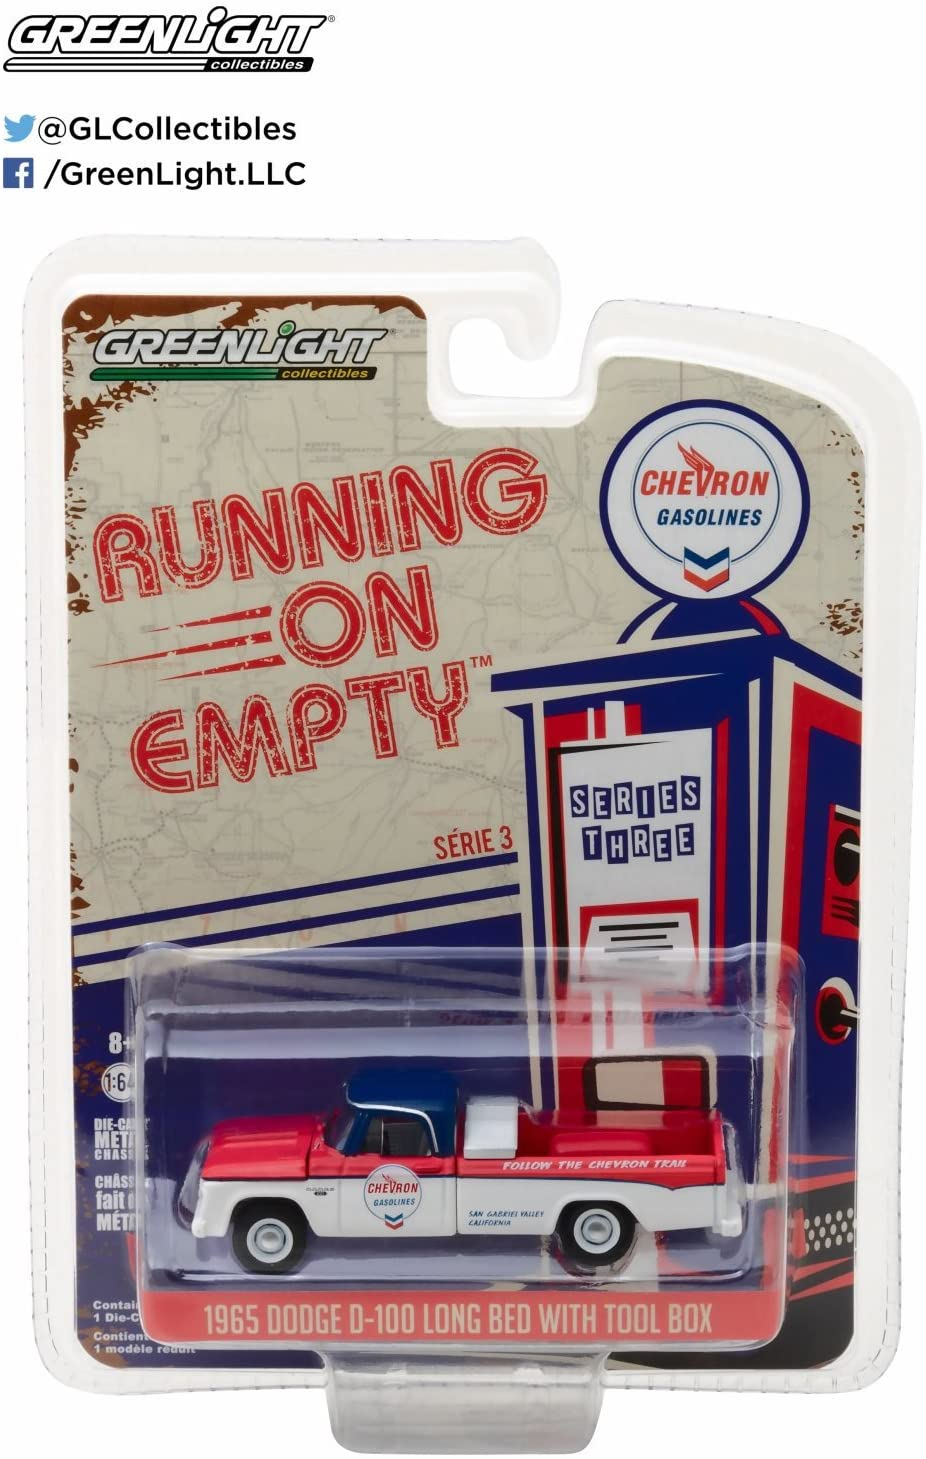 1965 Dodge D-100 Pickup Truck Chevron Long Bed with Tool Box Running on Empty Series 3 1/64 Diecast Model Car by Greenlight 41030 A